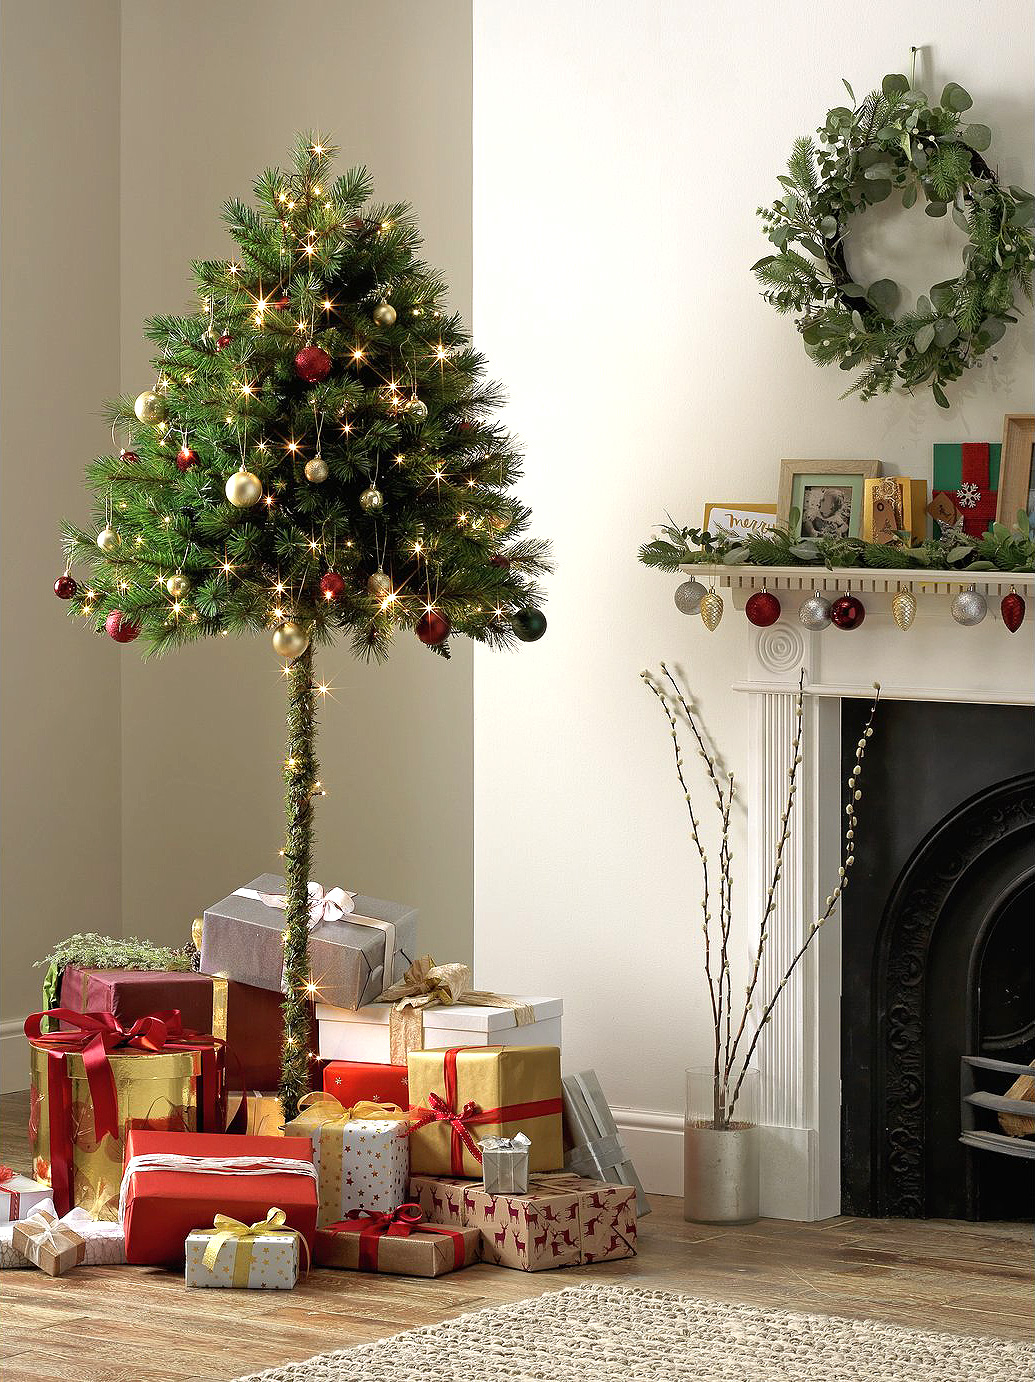 Curious Cat Destroying Your Christmas Tree? Meet the 'Half Tree' Solution for Sale Now